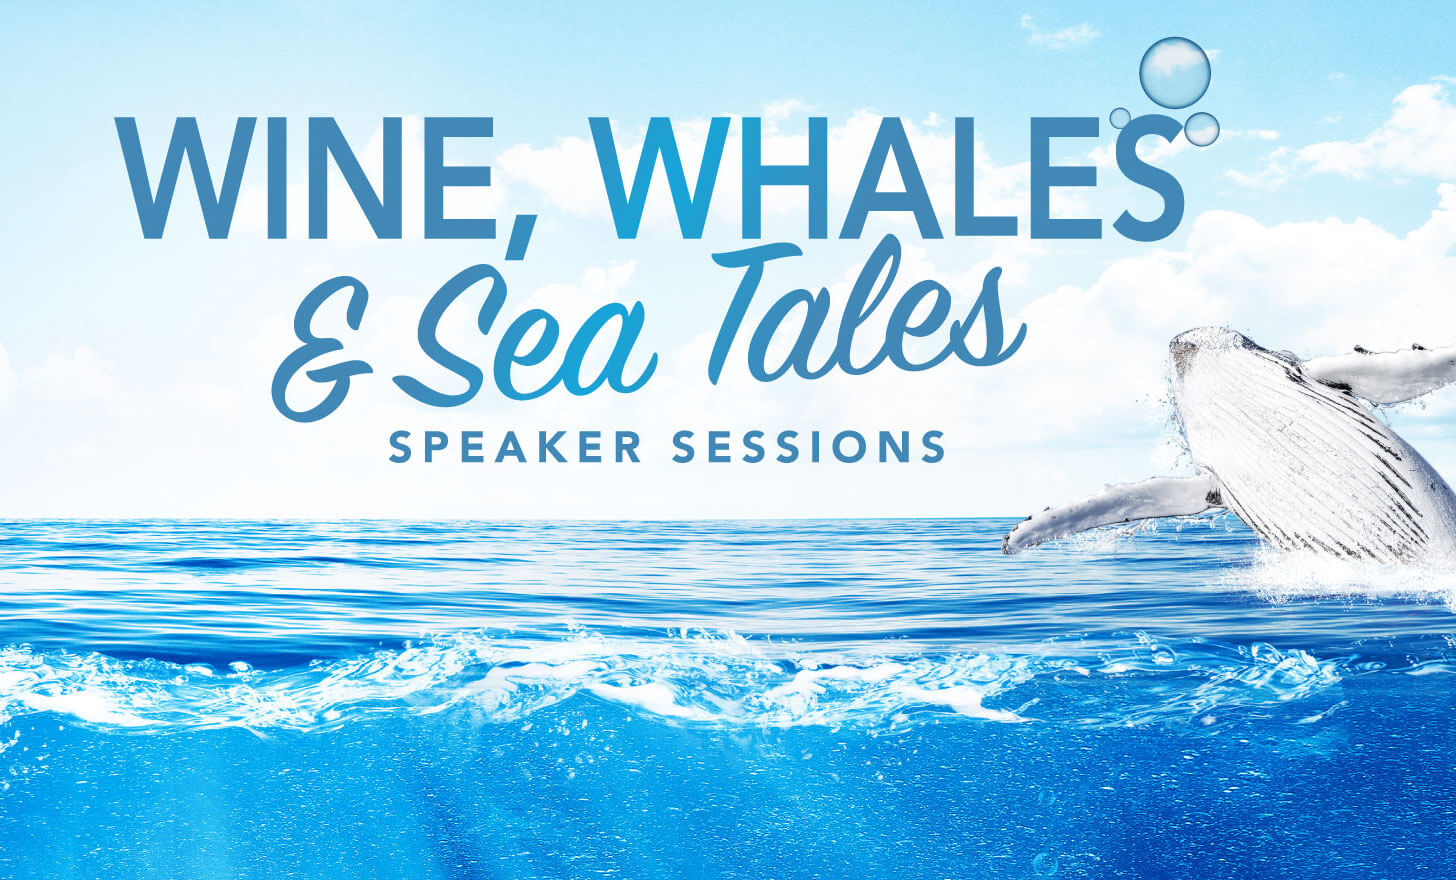 Wine, Whales & Sea Tales